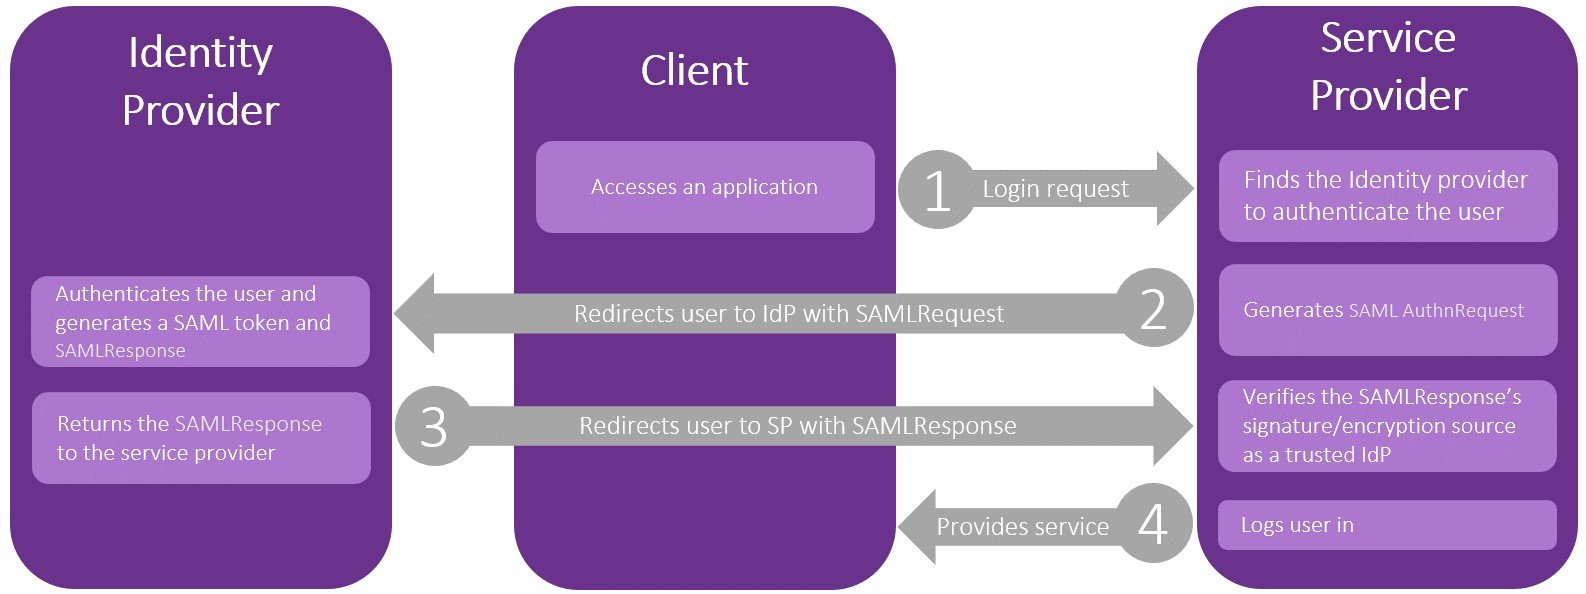 Golden SAML: Newly Discovered Attack Technique Forges Authentication